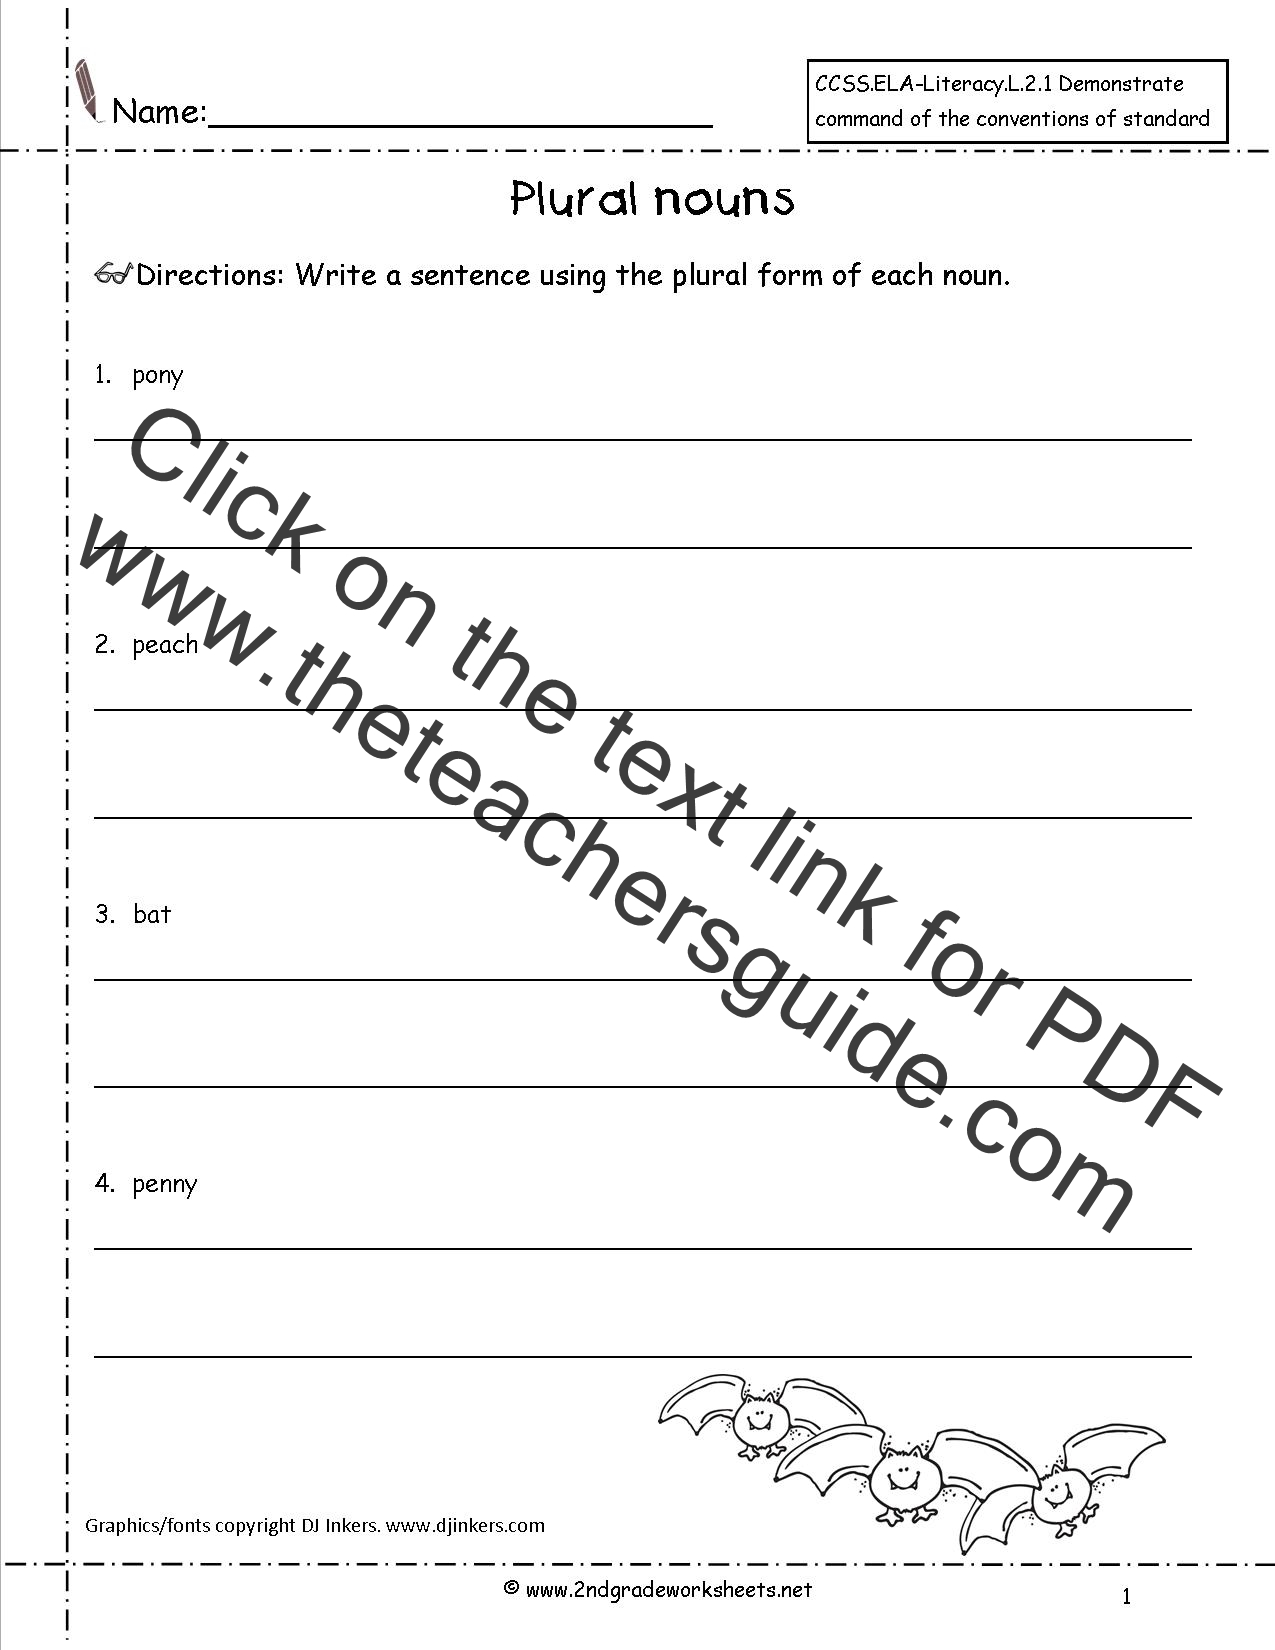 Singular and Plural Nouns Worksheets from The Teacher\'s Guide